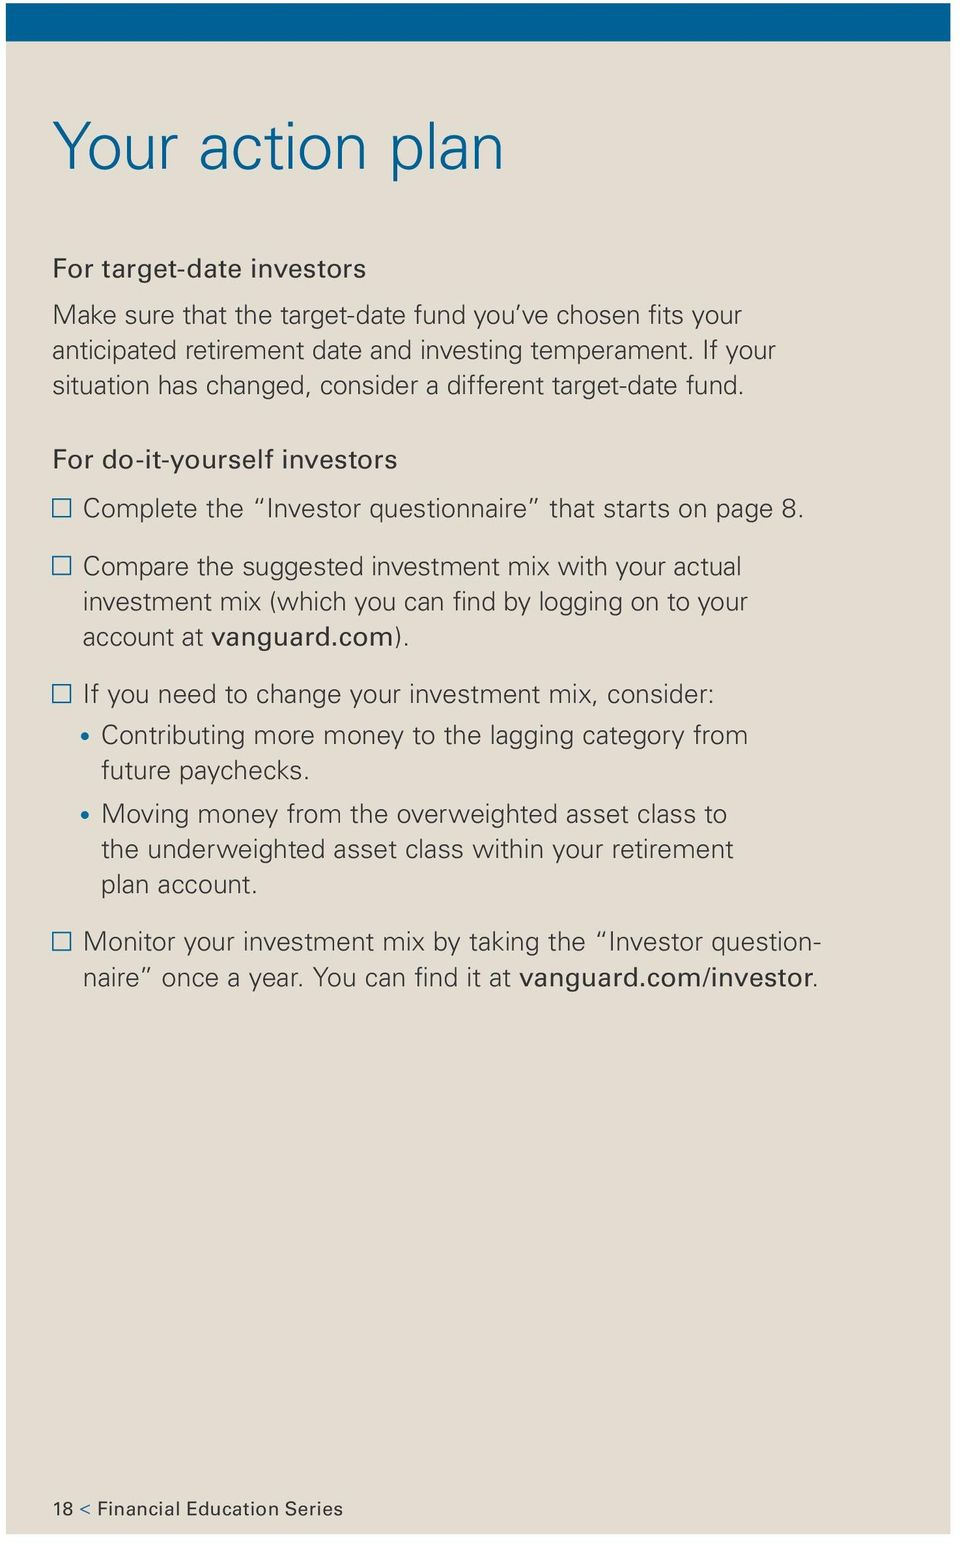 Compare the suggested investment mix with your actual investment mix (which you can find by logging on to your account at vanguard.com).